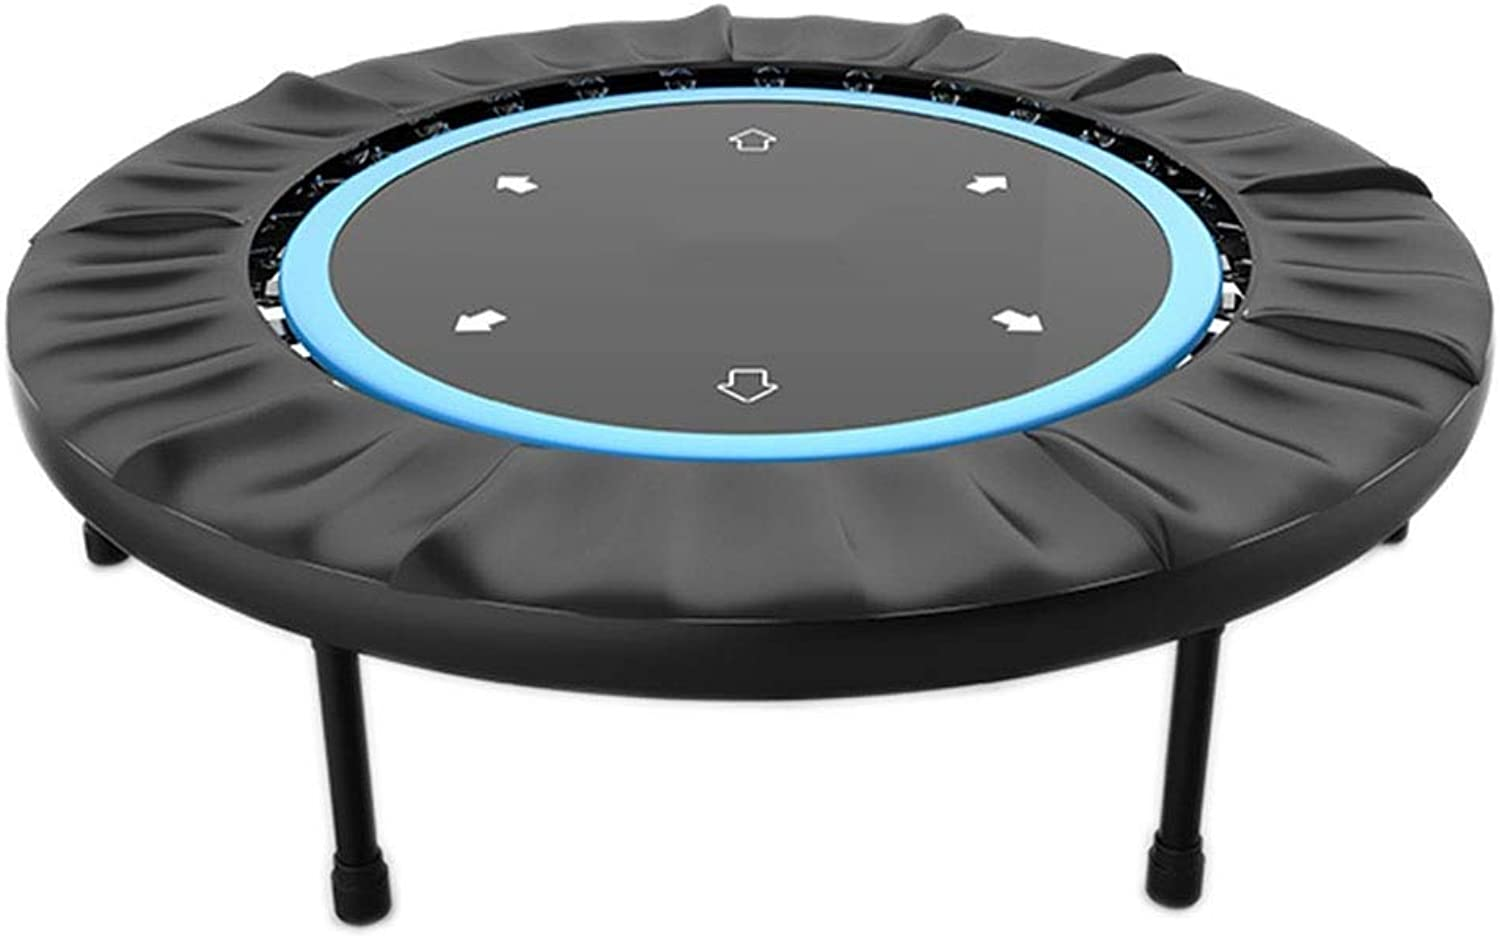 JKLL Indoor Trampolines with Safety Pad for Indoor Garden Workout Cardio Training (2 color  bluee Red, Folding)